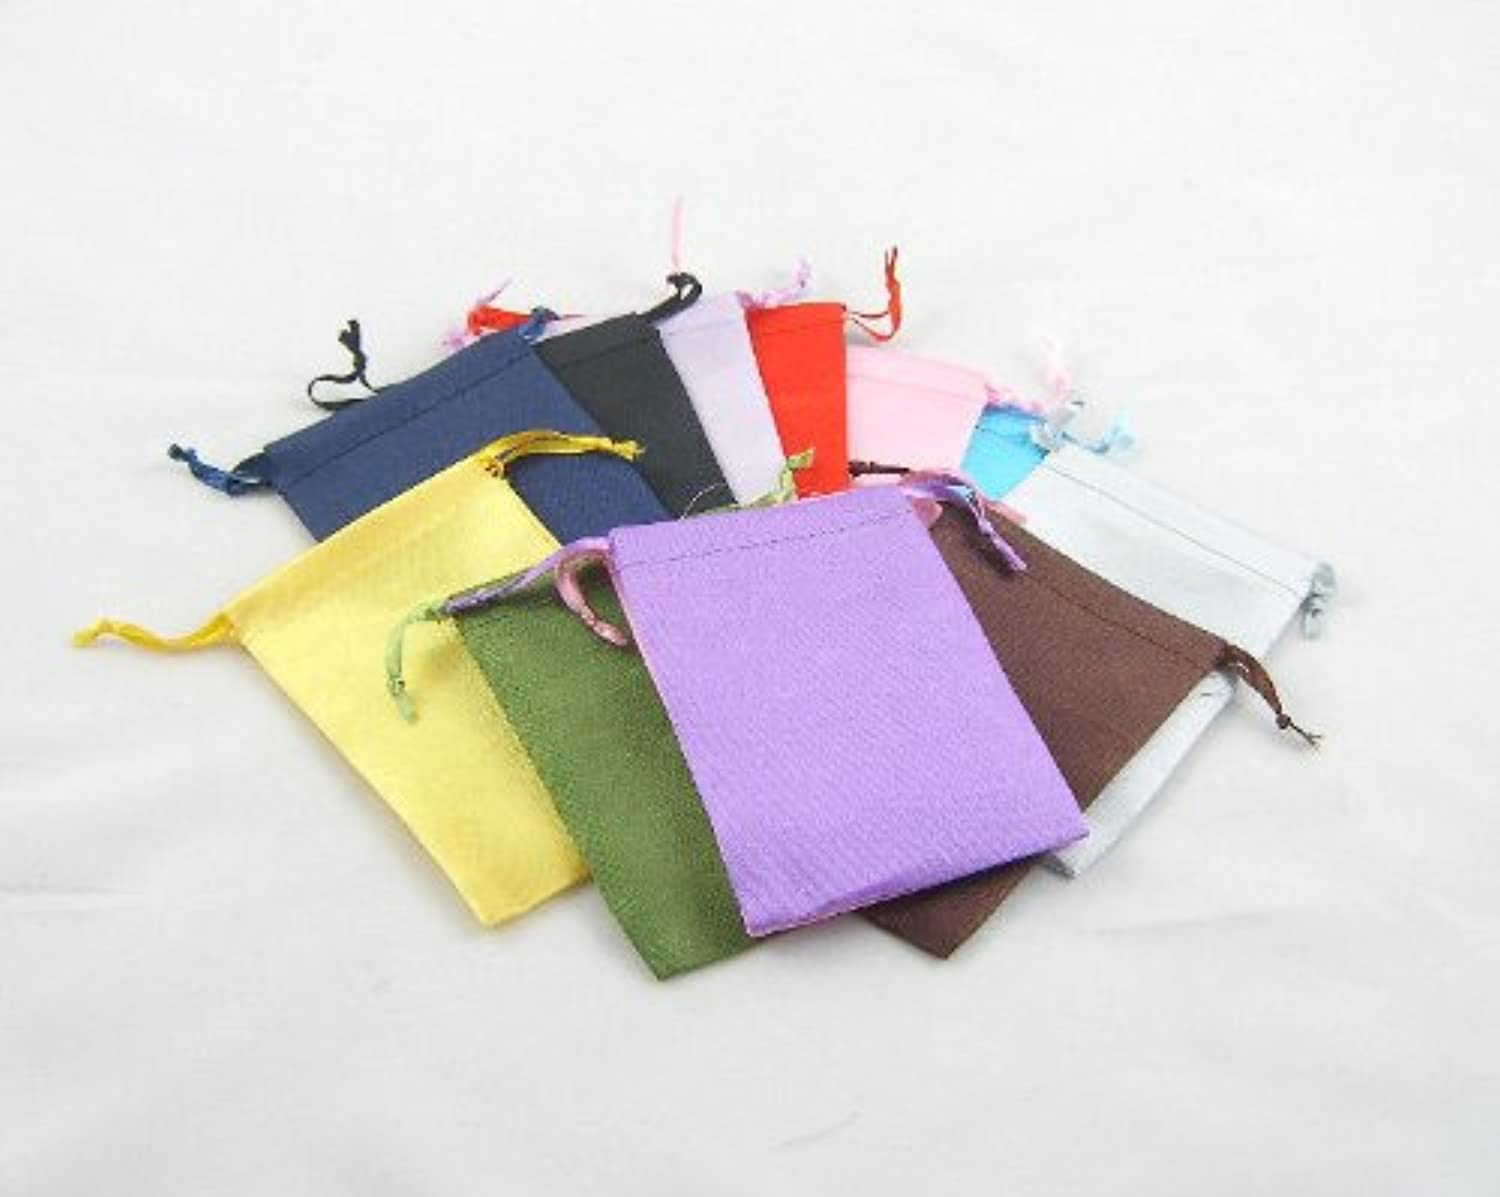 12 12 12 Assorted Colour Silky Drawstring Pouches-130mmx100mm-bd1234-from £0.25 each B004WKII9E | Geeignet für Farbe